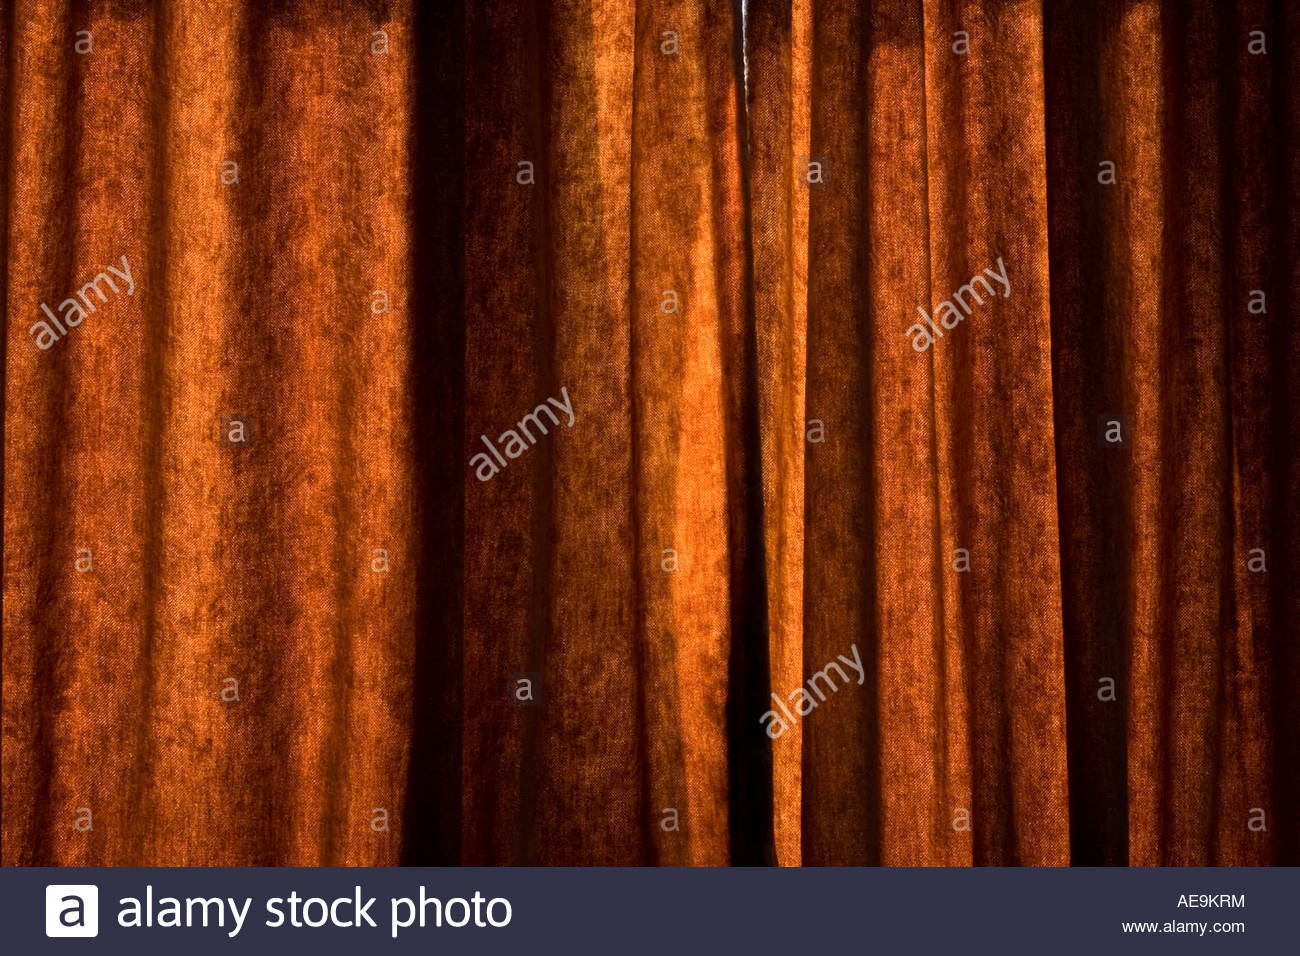 Brown Orange Velvet Curtains In Sunlight Stock Photo Royalty Free Throughout Orange Velvet Curtains (View 9 of 15)